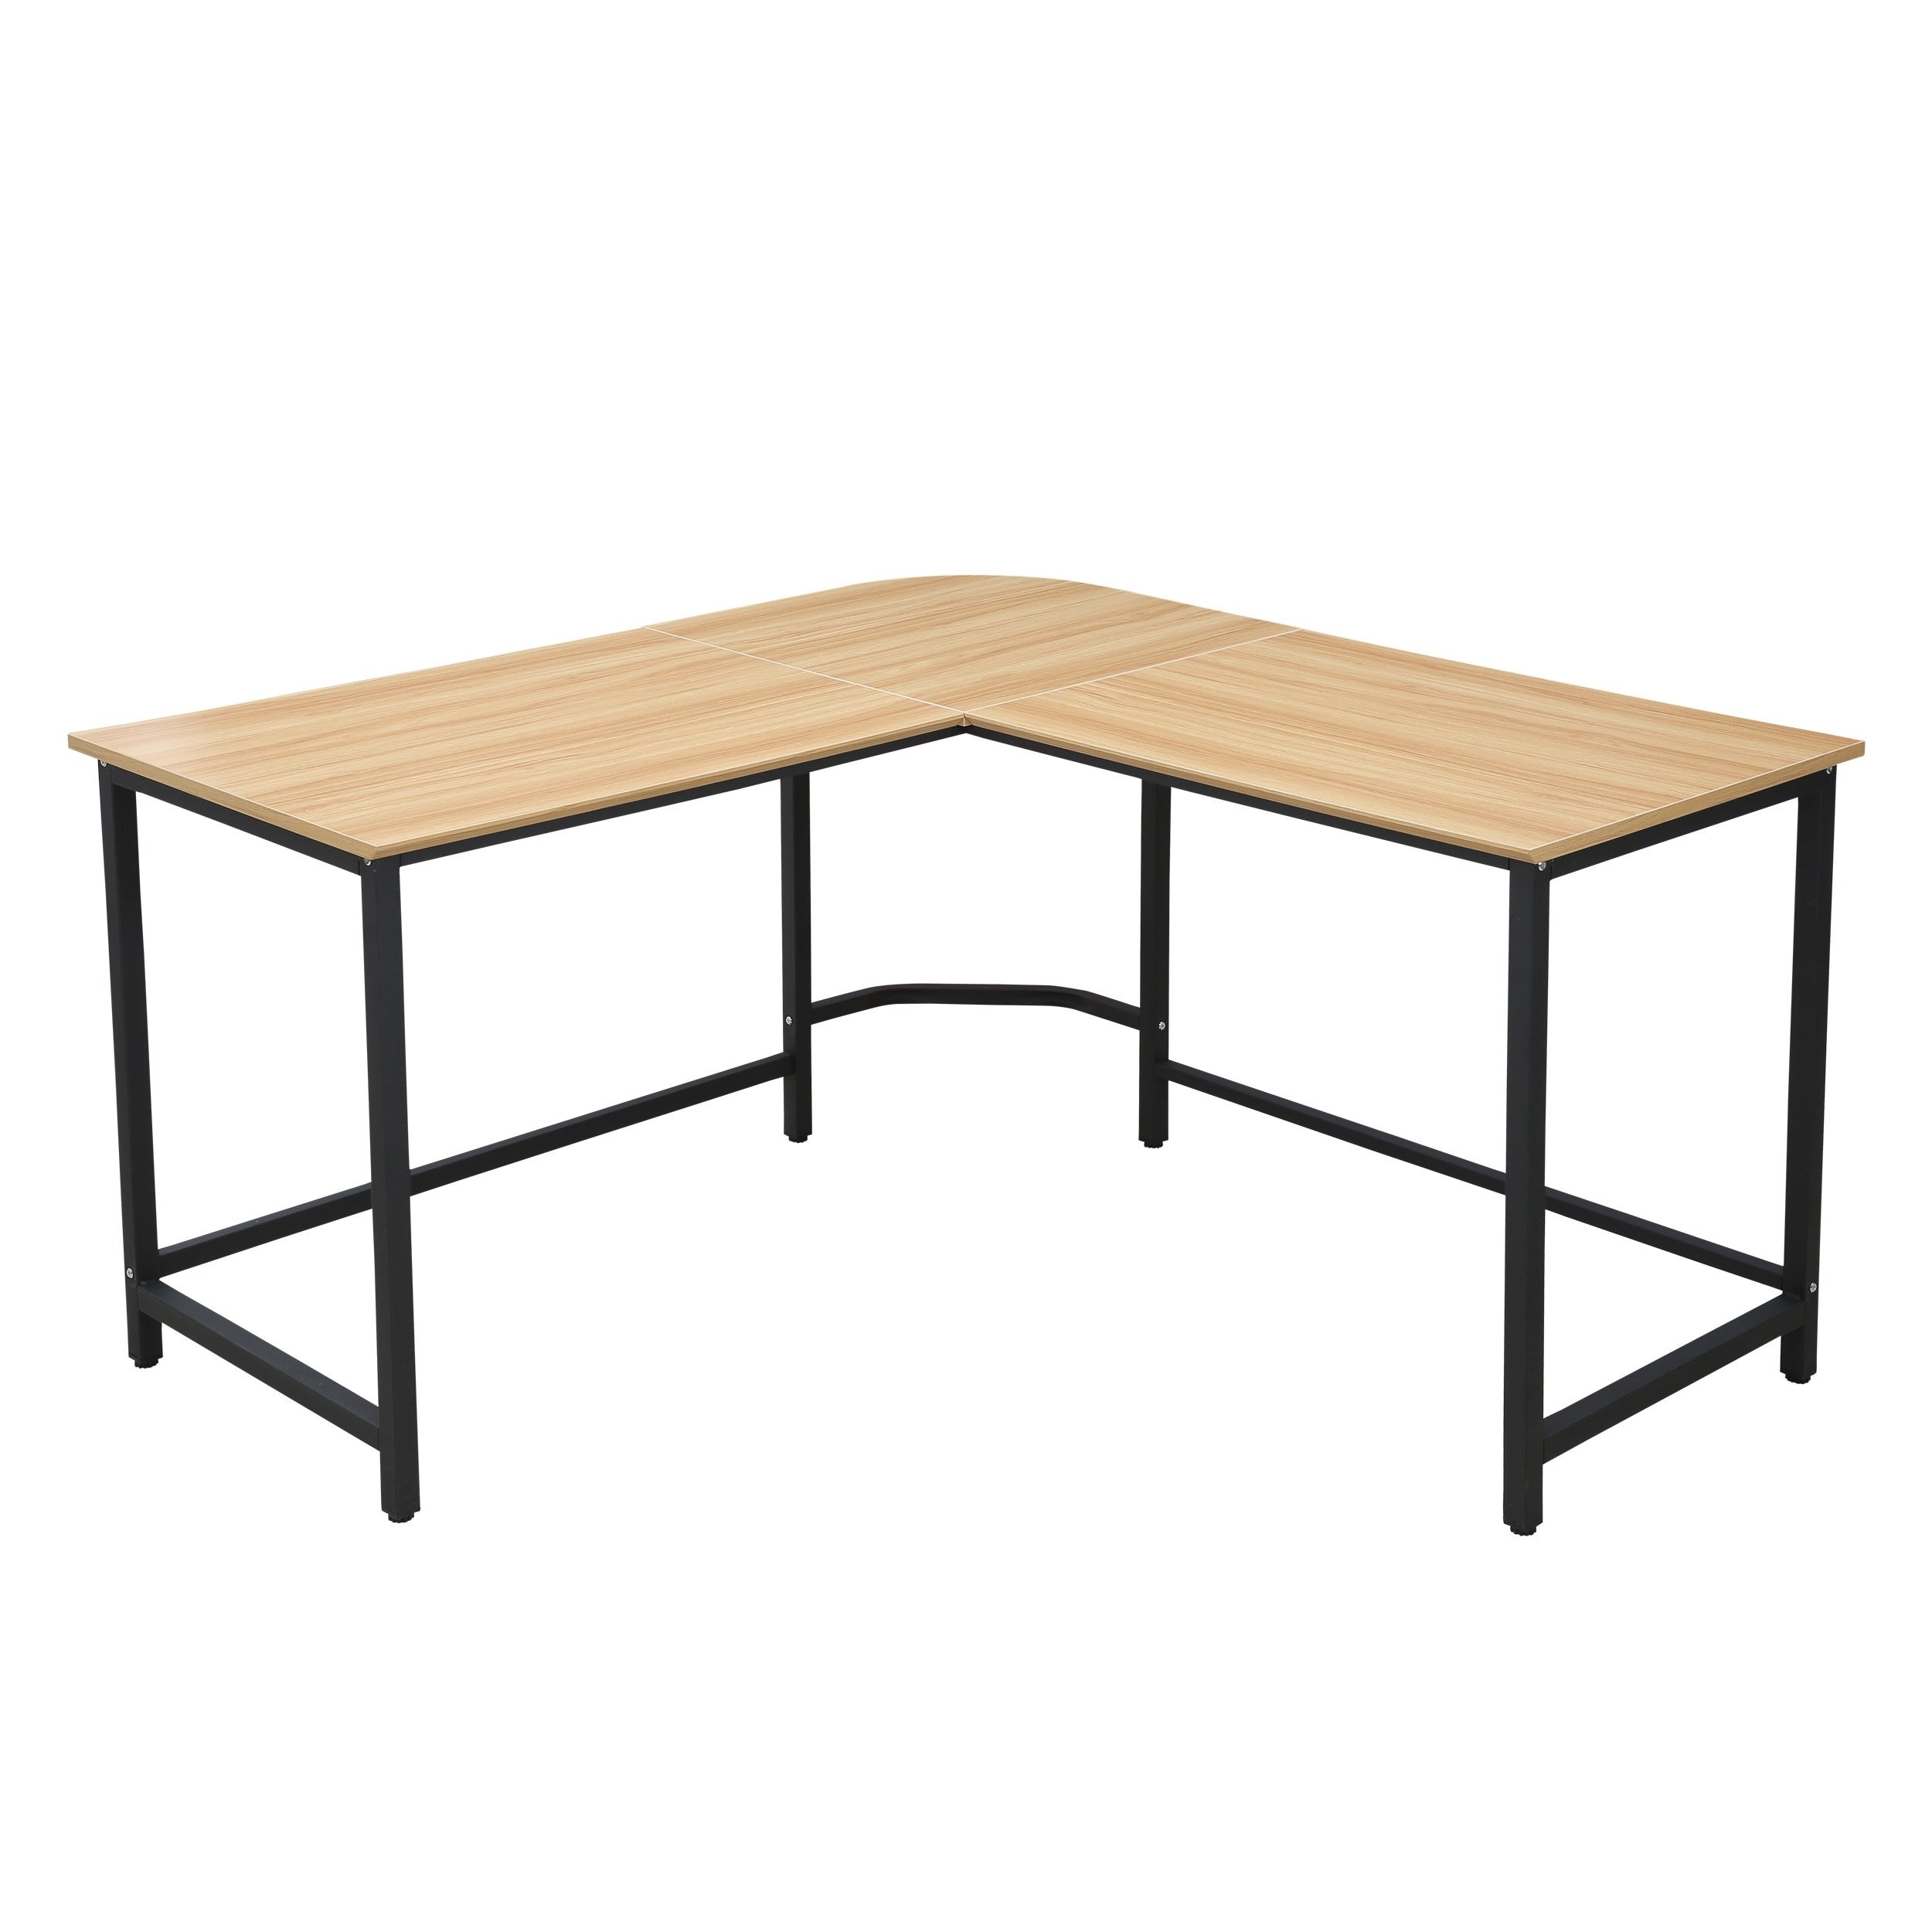 Edgemod The Tristan Compact L Shaped Office Desk In Natural Black On Sale Overstock 20732116